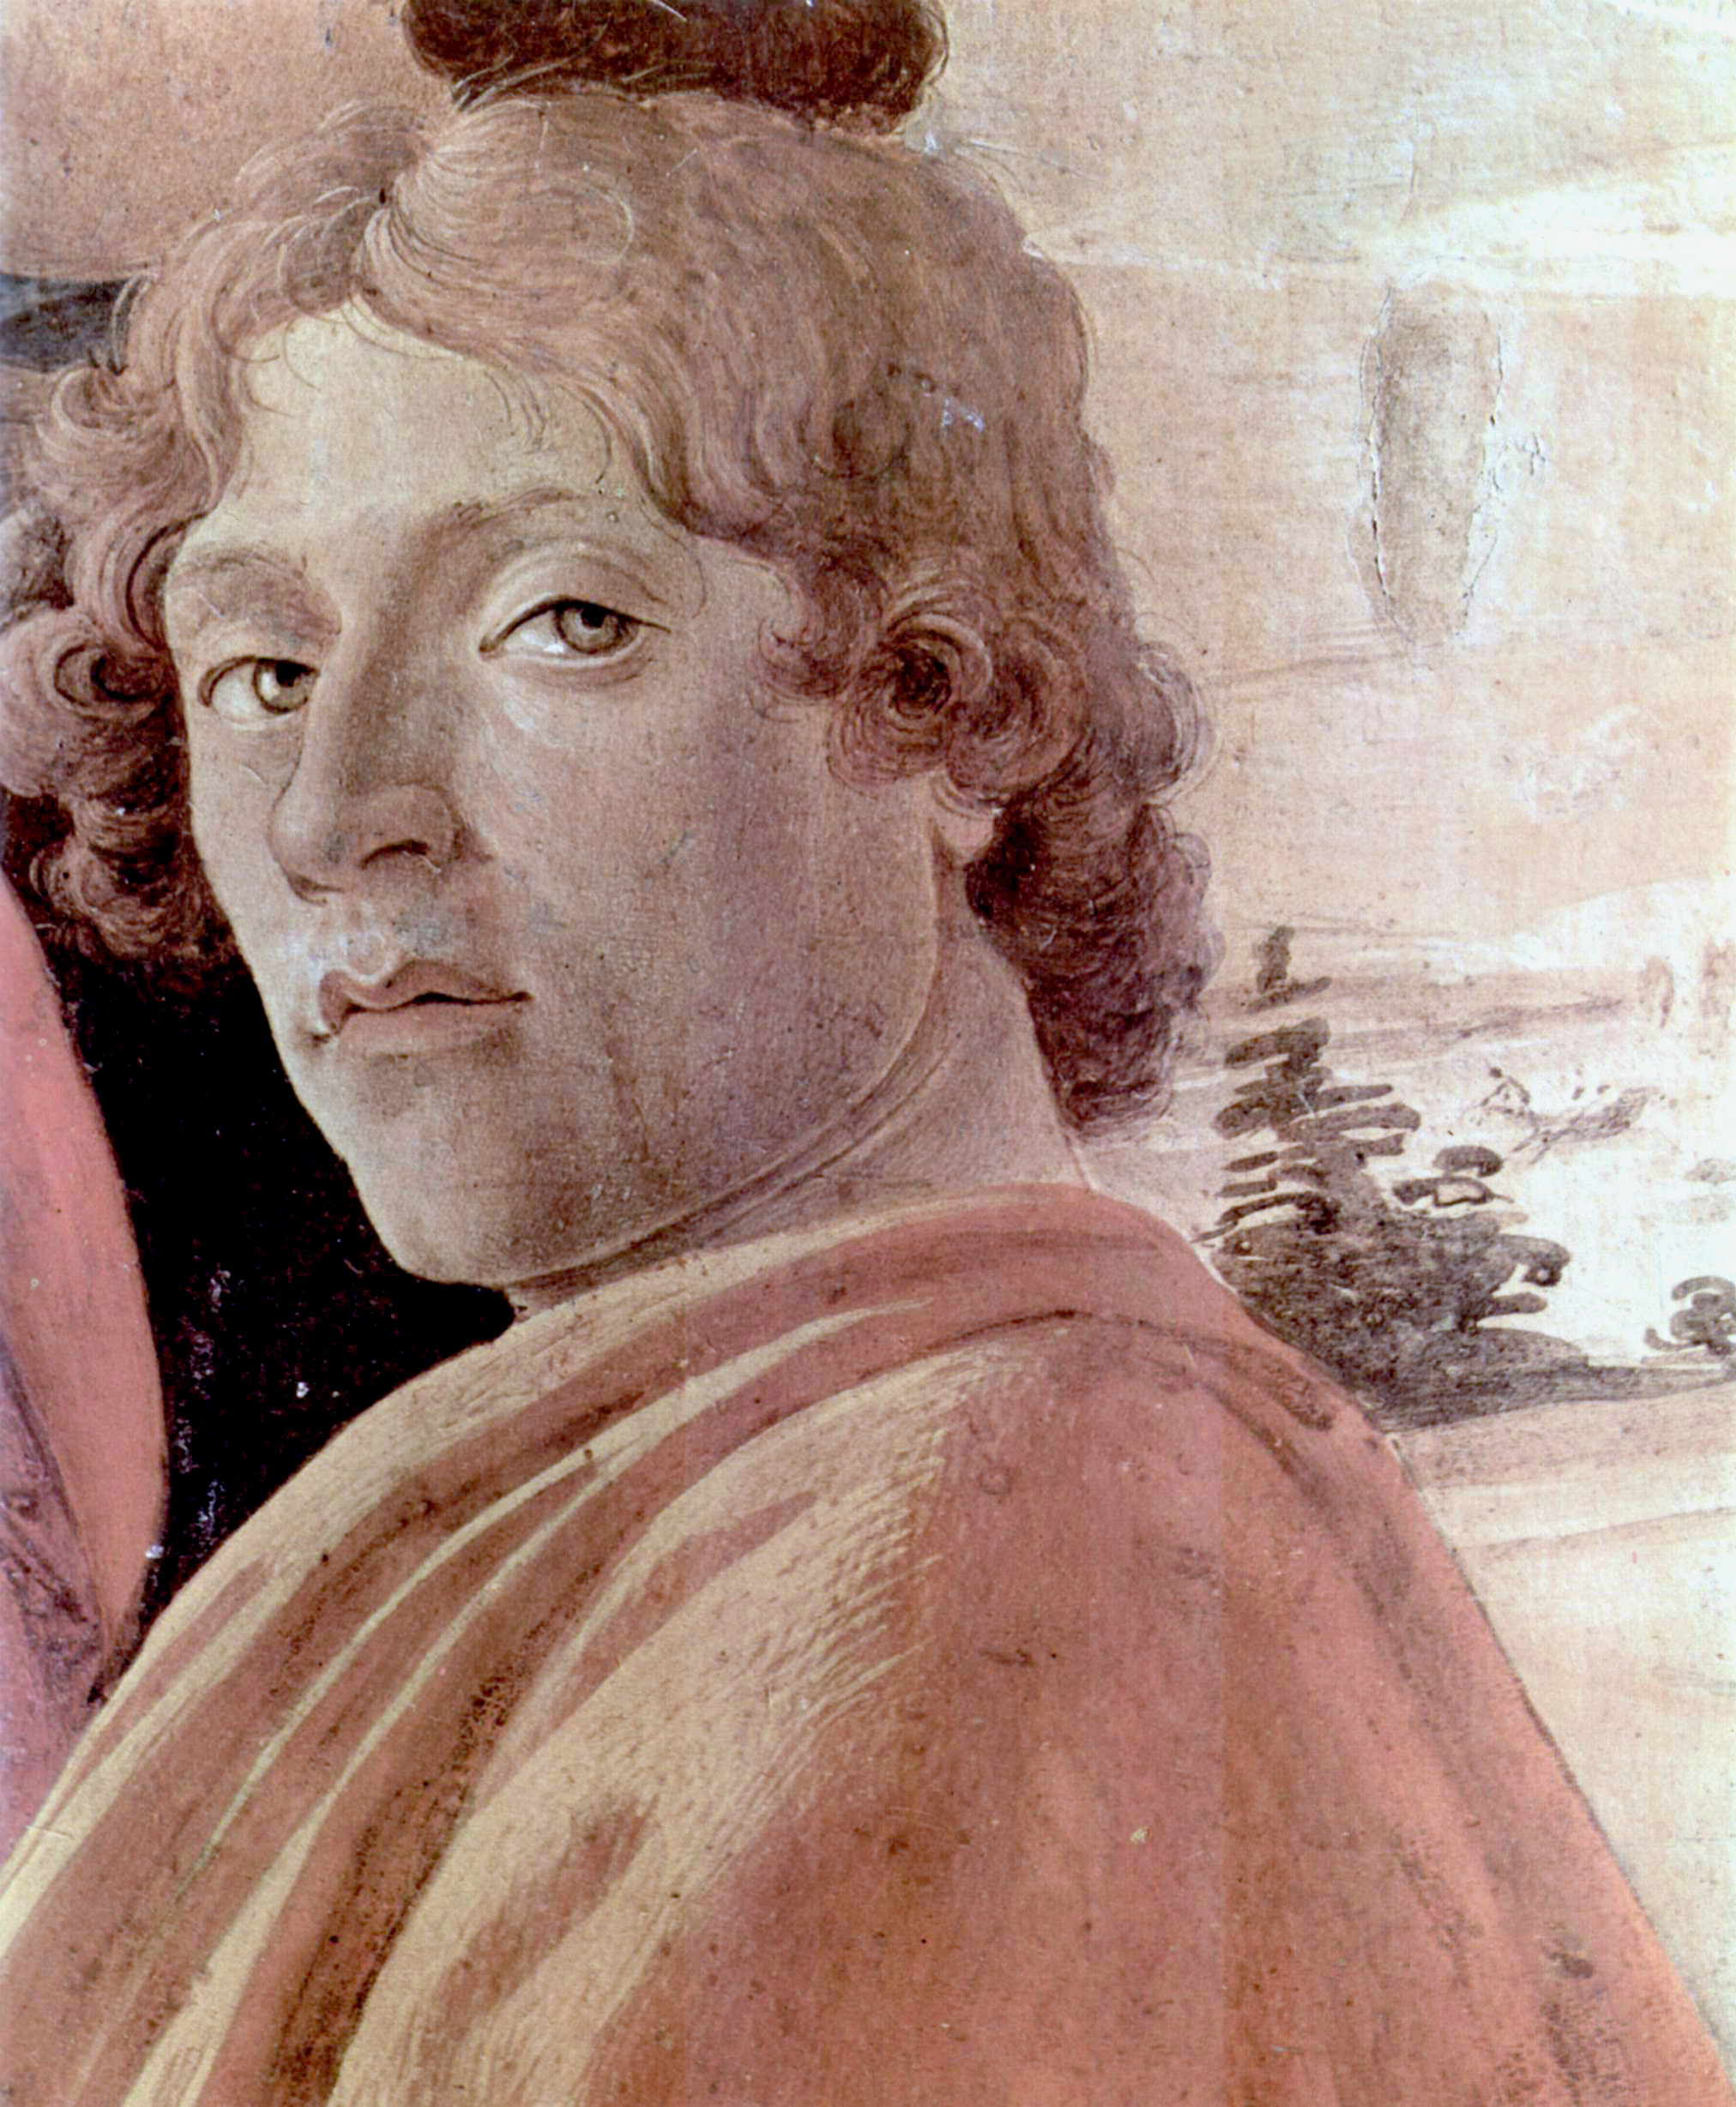 the life and art works of sandro botticelli Get this from a library sandro botticelli : life and work [r w lightbown] -- reassesses botticelli's major works, examines his use of color, and traces his career as an artist.